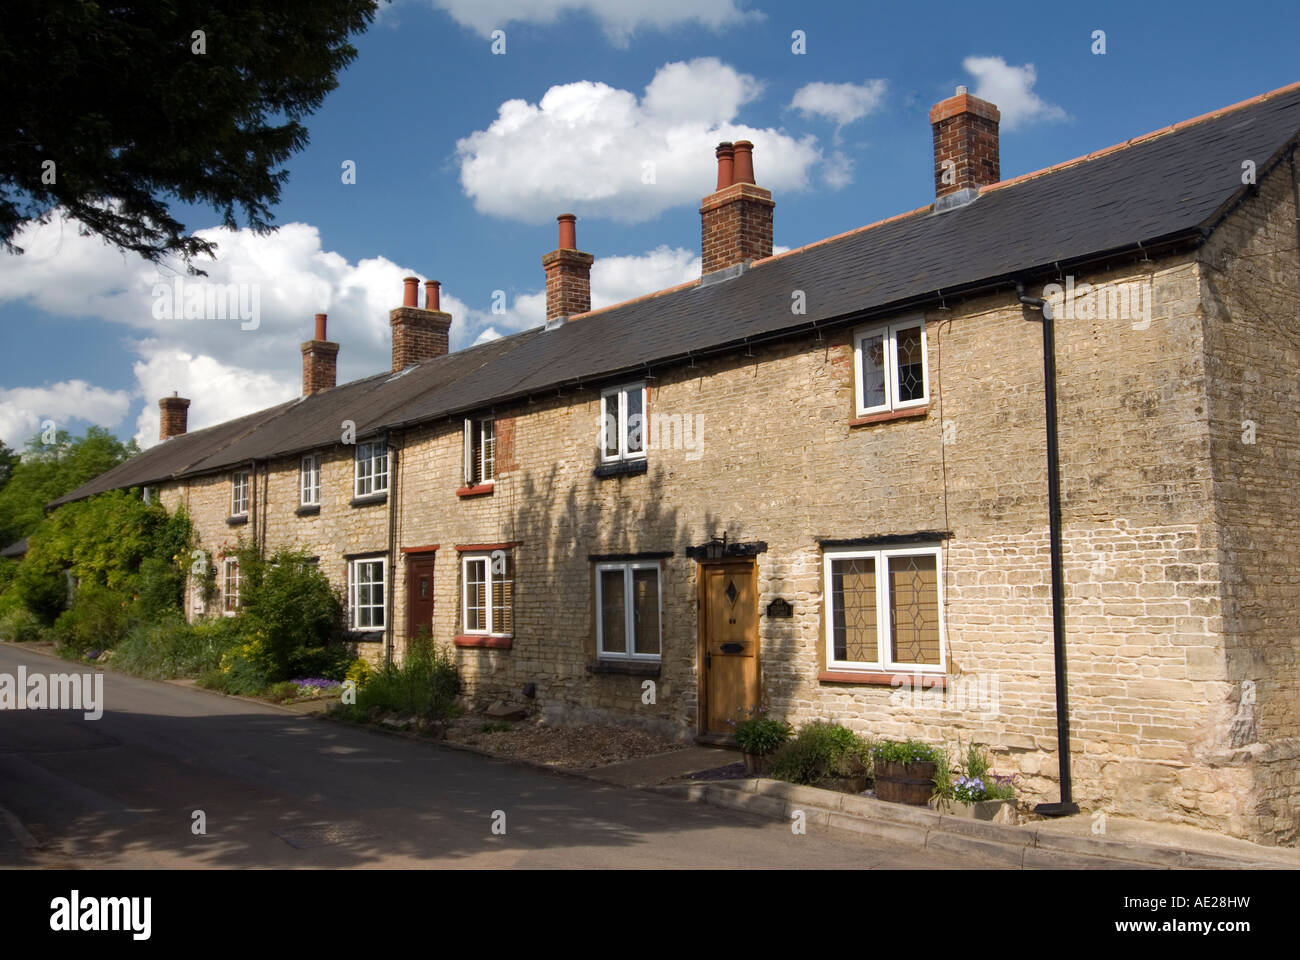 Traditional looking stone cottages at Cosgrove on the Grand Union Canal. The modern TV aerials have been taken out - Stock Image